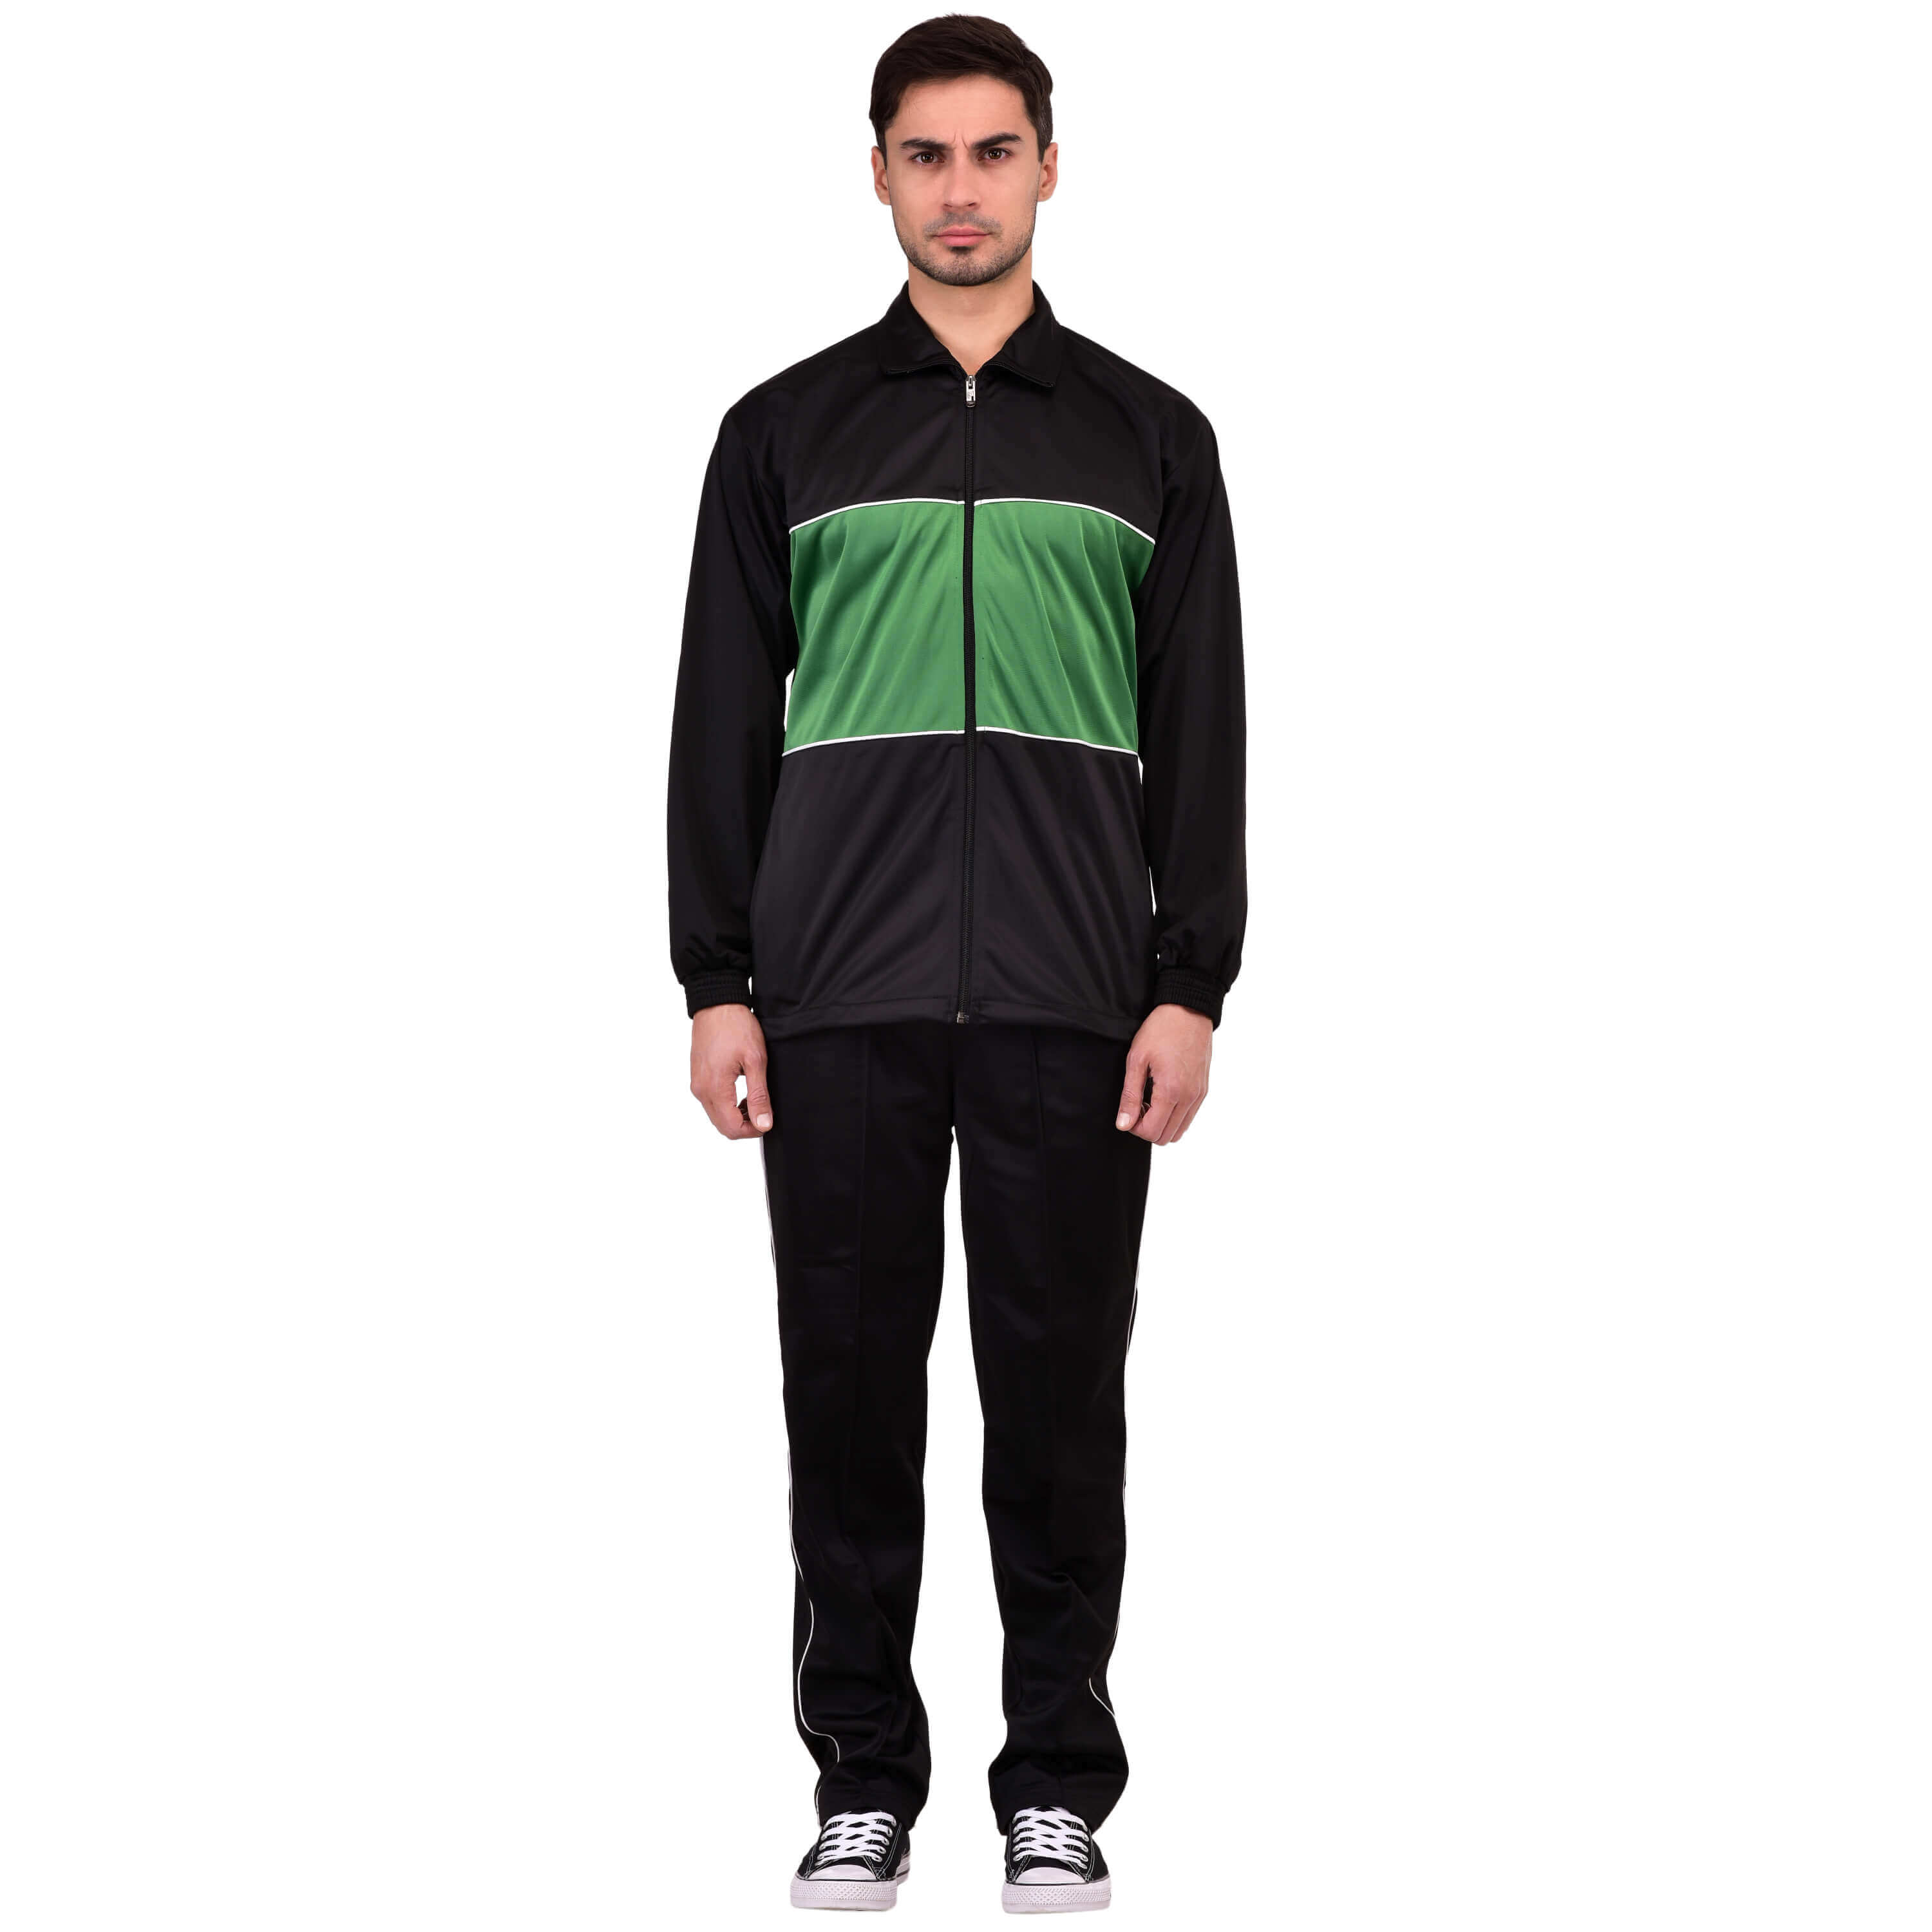 Full Tracksuit Manufacturers in Raipur